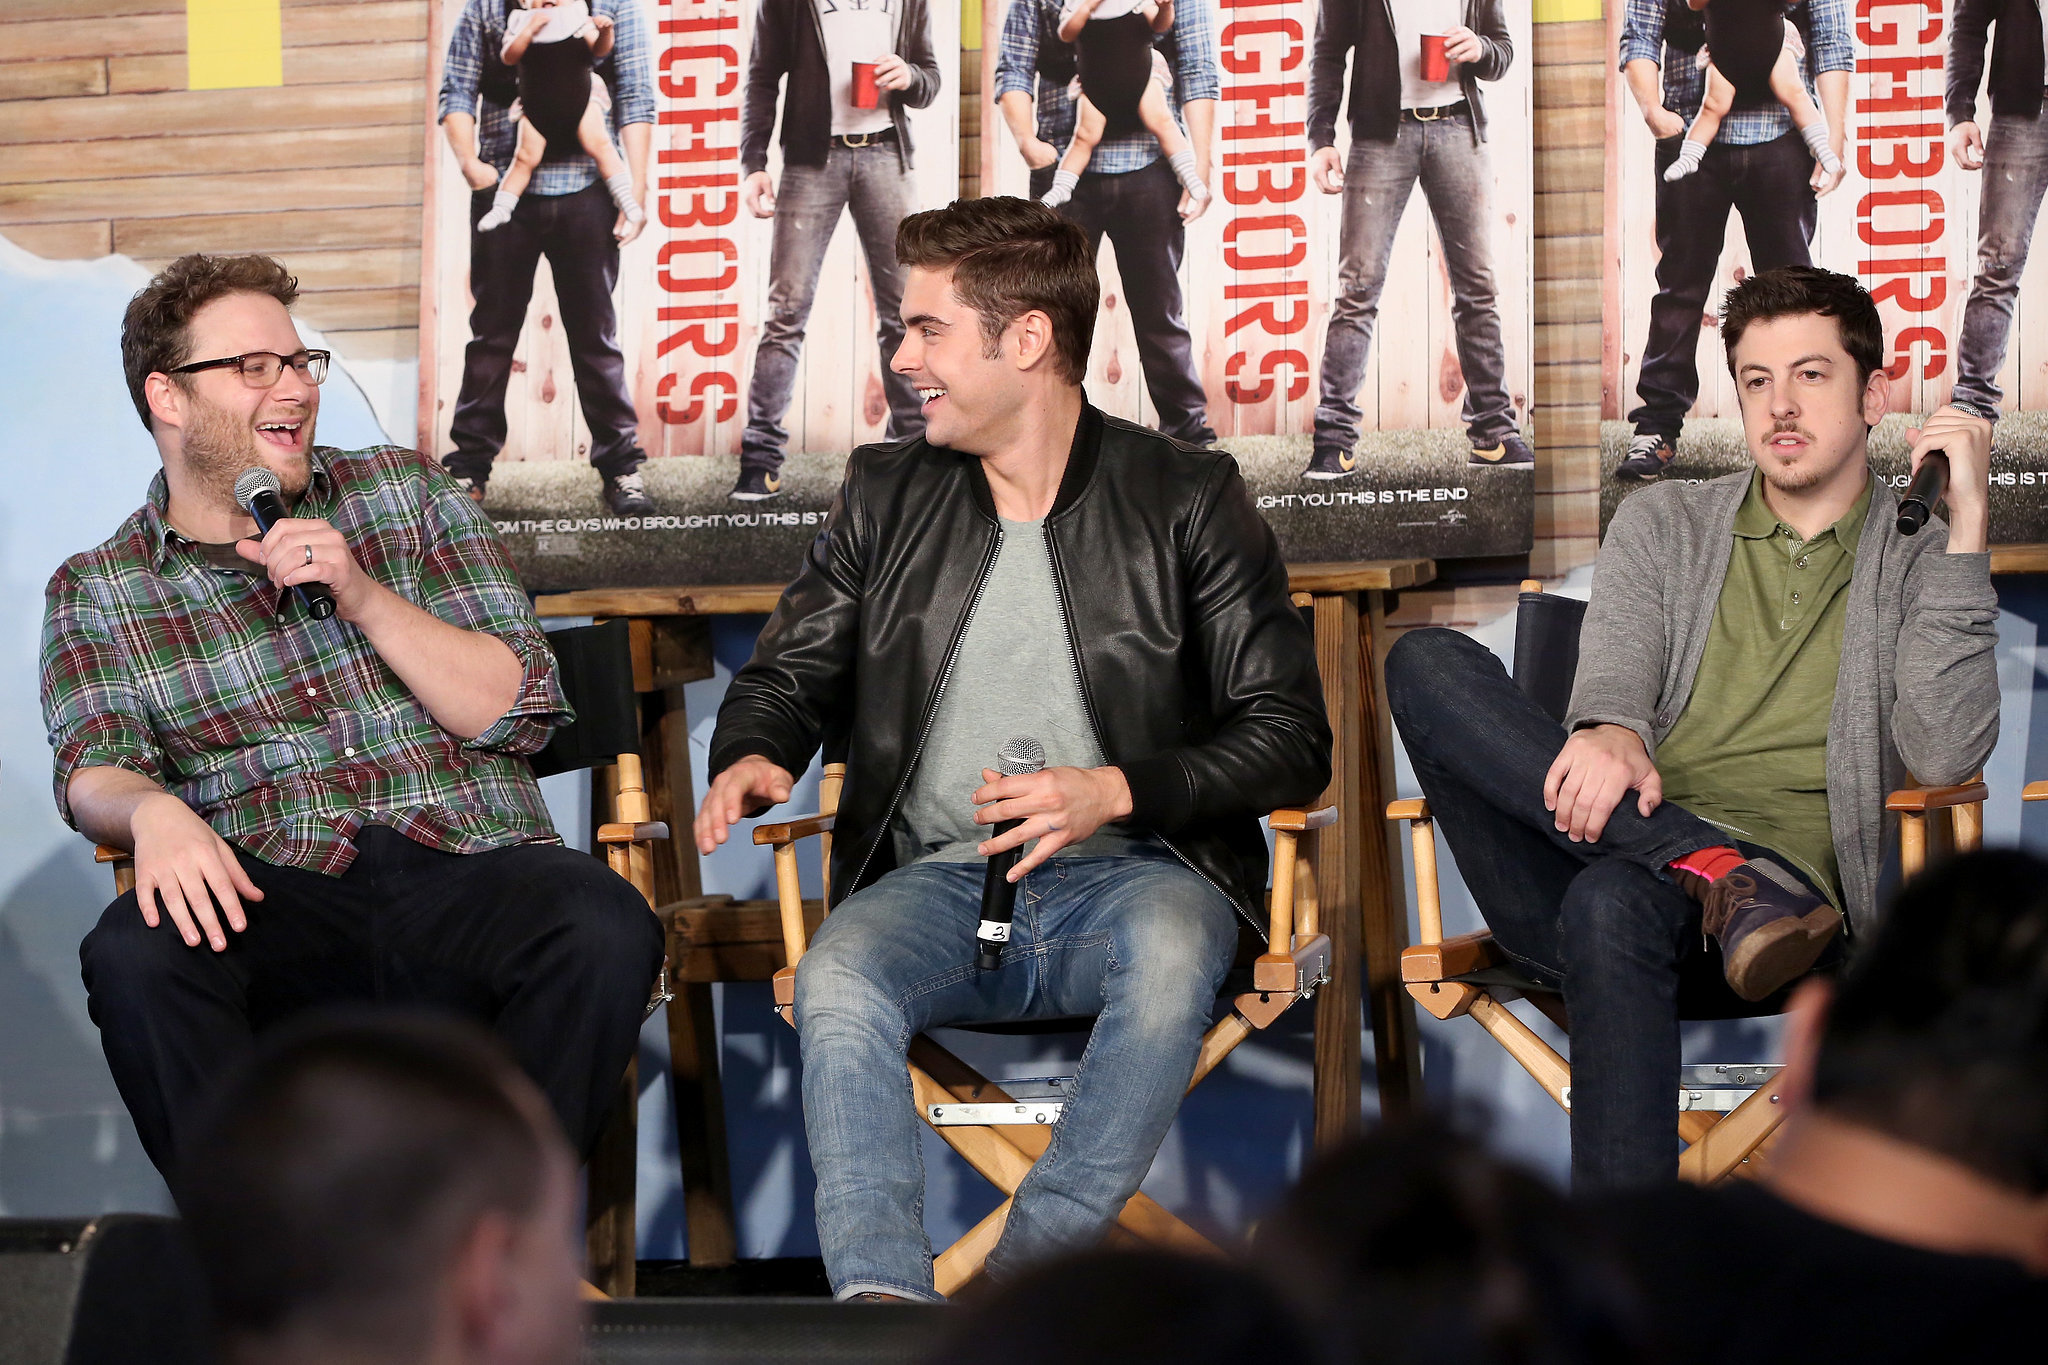 Neighbors costars Seth Rogen, Zac Efron, and Christopher Mintz-Plasse had an engaging chat at the Funny or Die Clubhouse  and Facebook Pop-Up headquarters on Saturday.